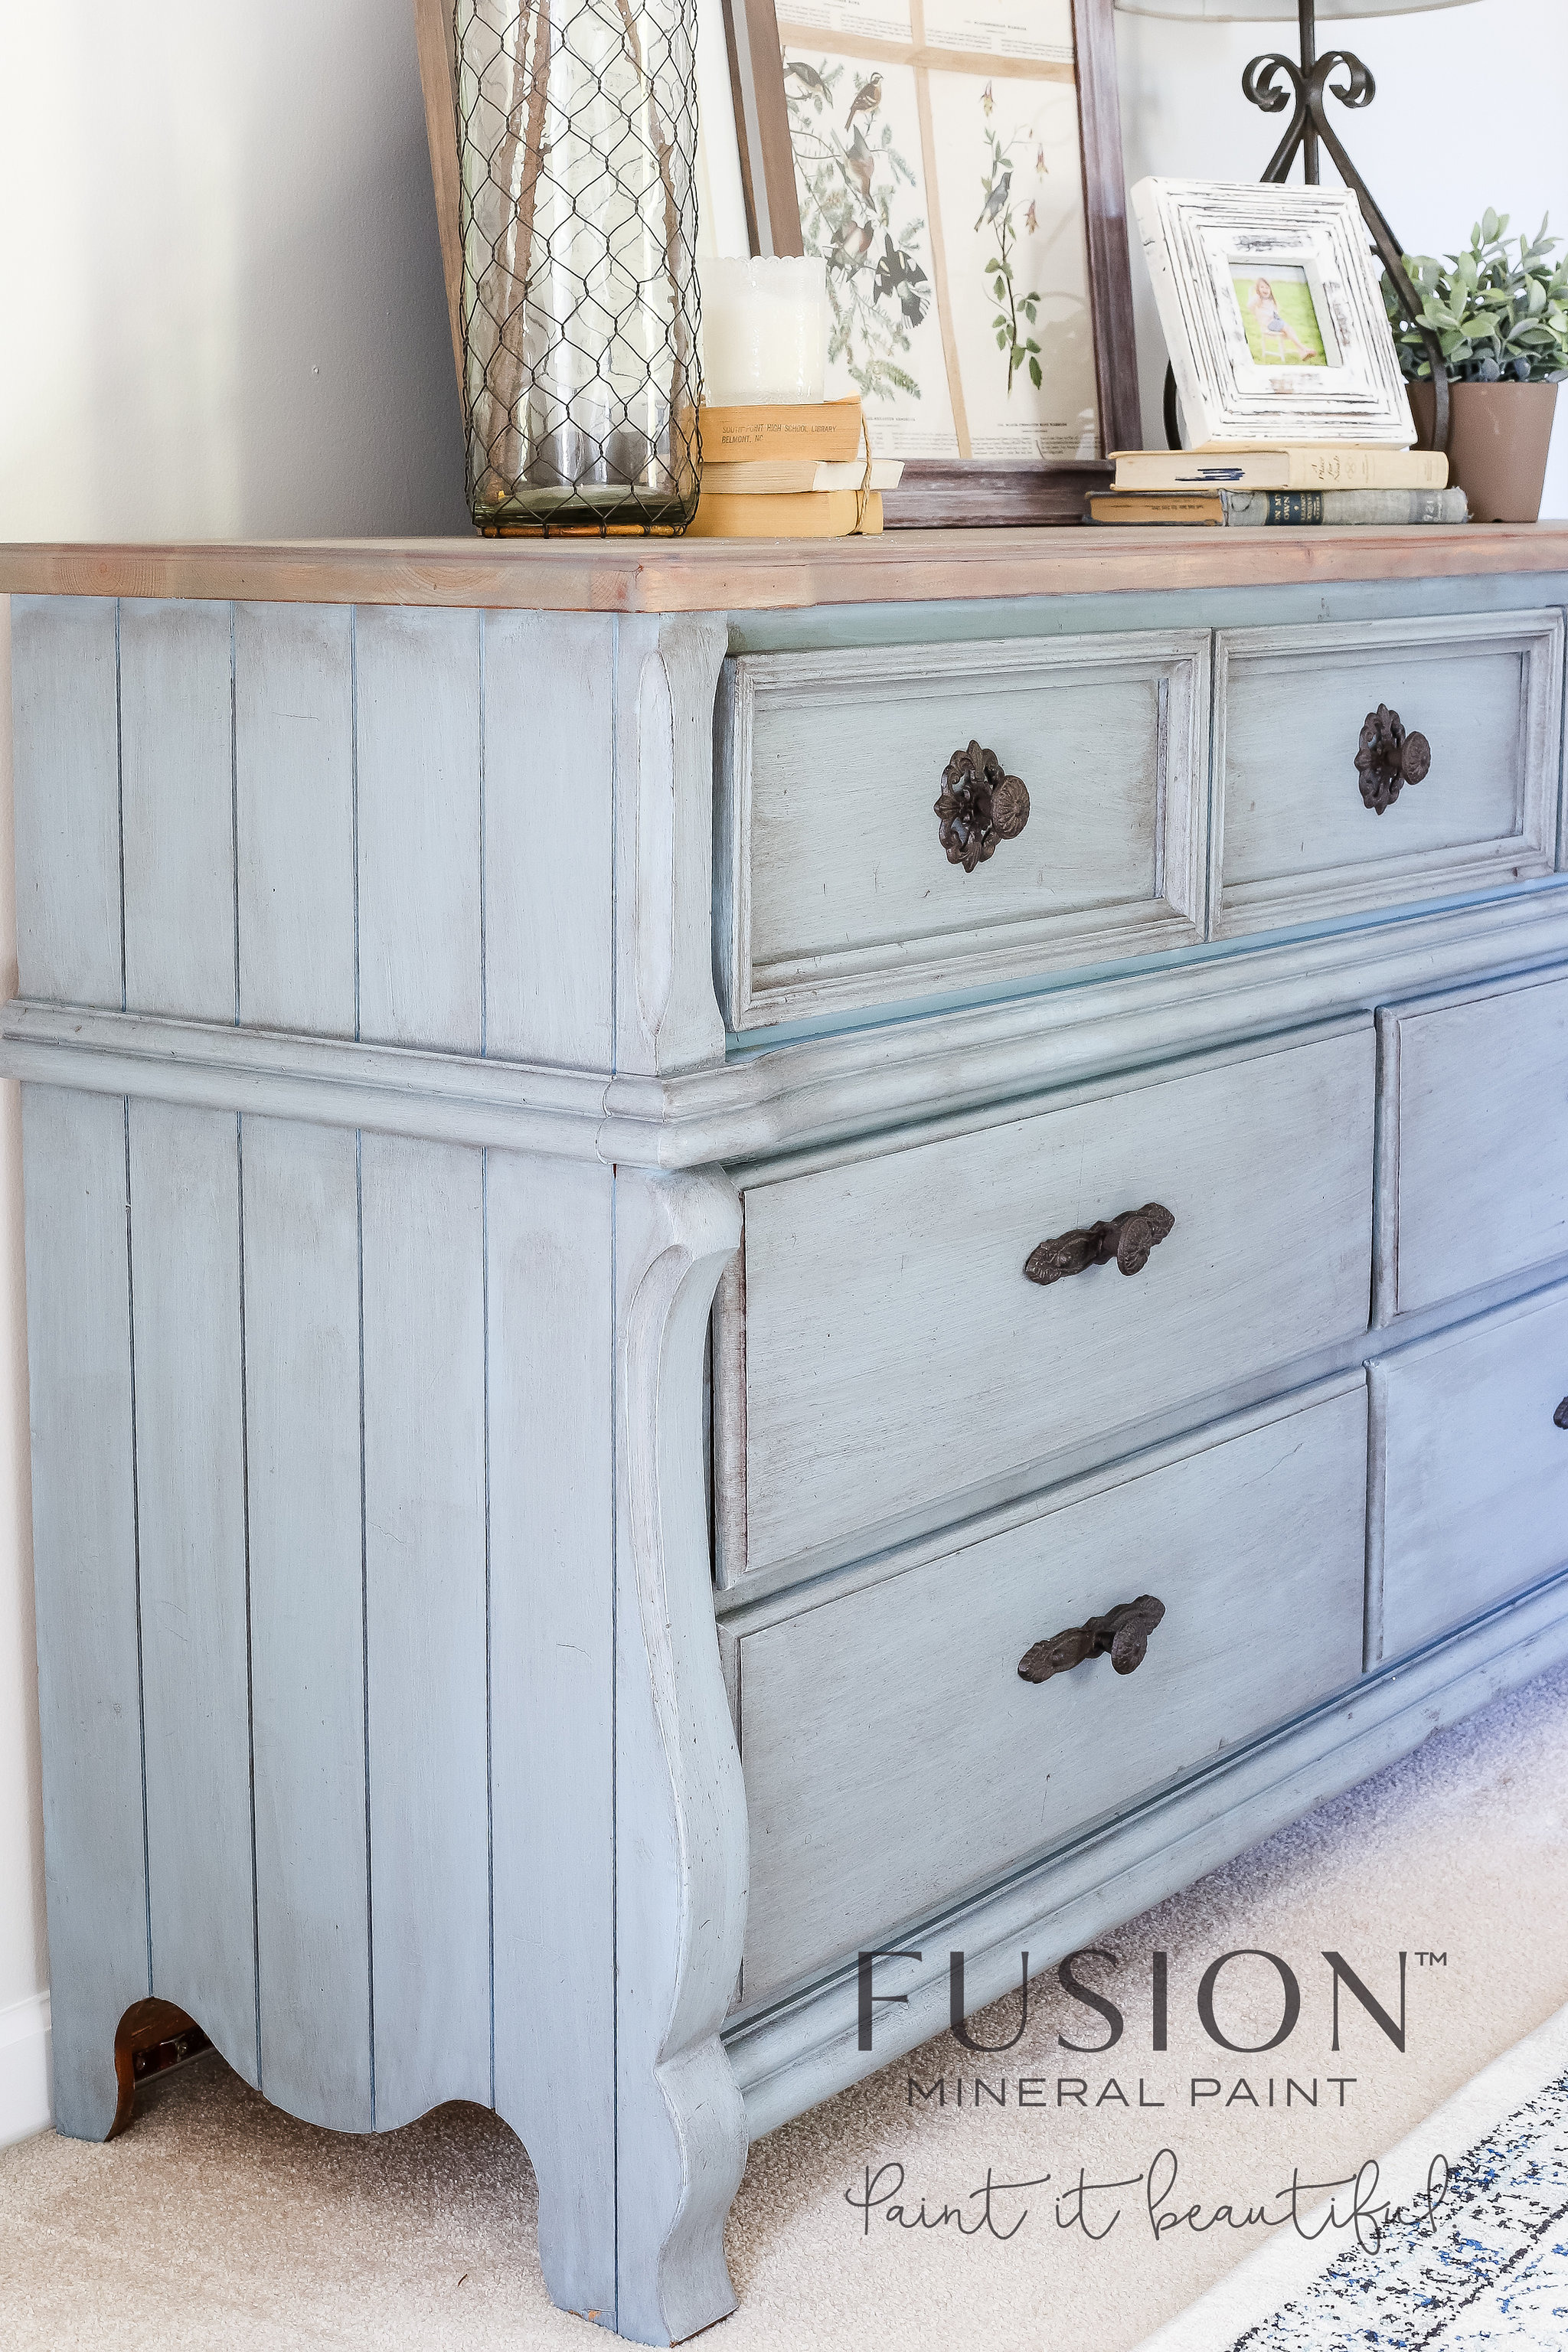 Antique Finishes Wood Furniture Awesome when and How to Use Antique Glaze or Dark Wax On Your